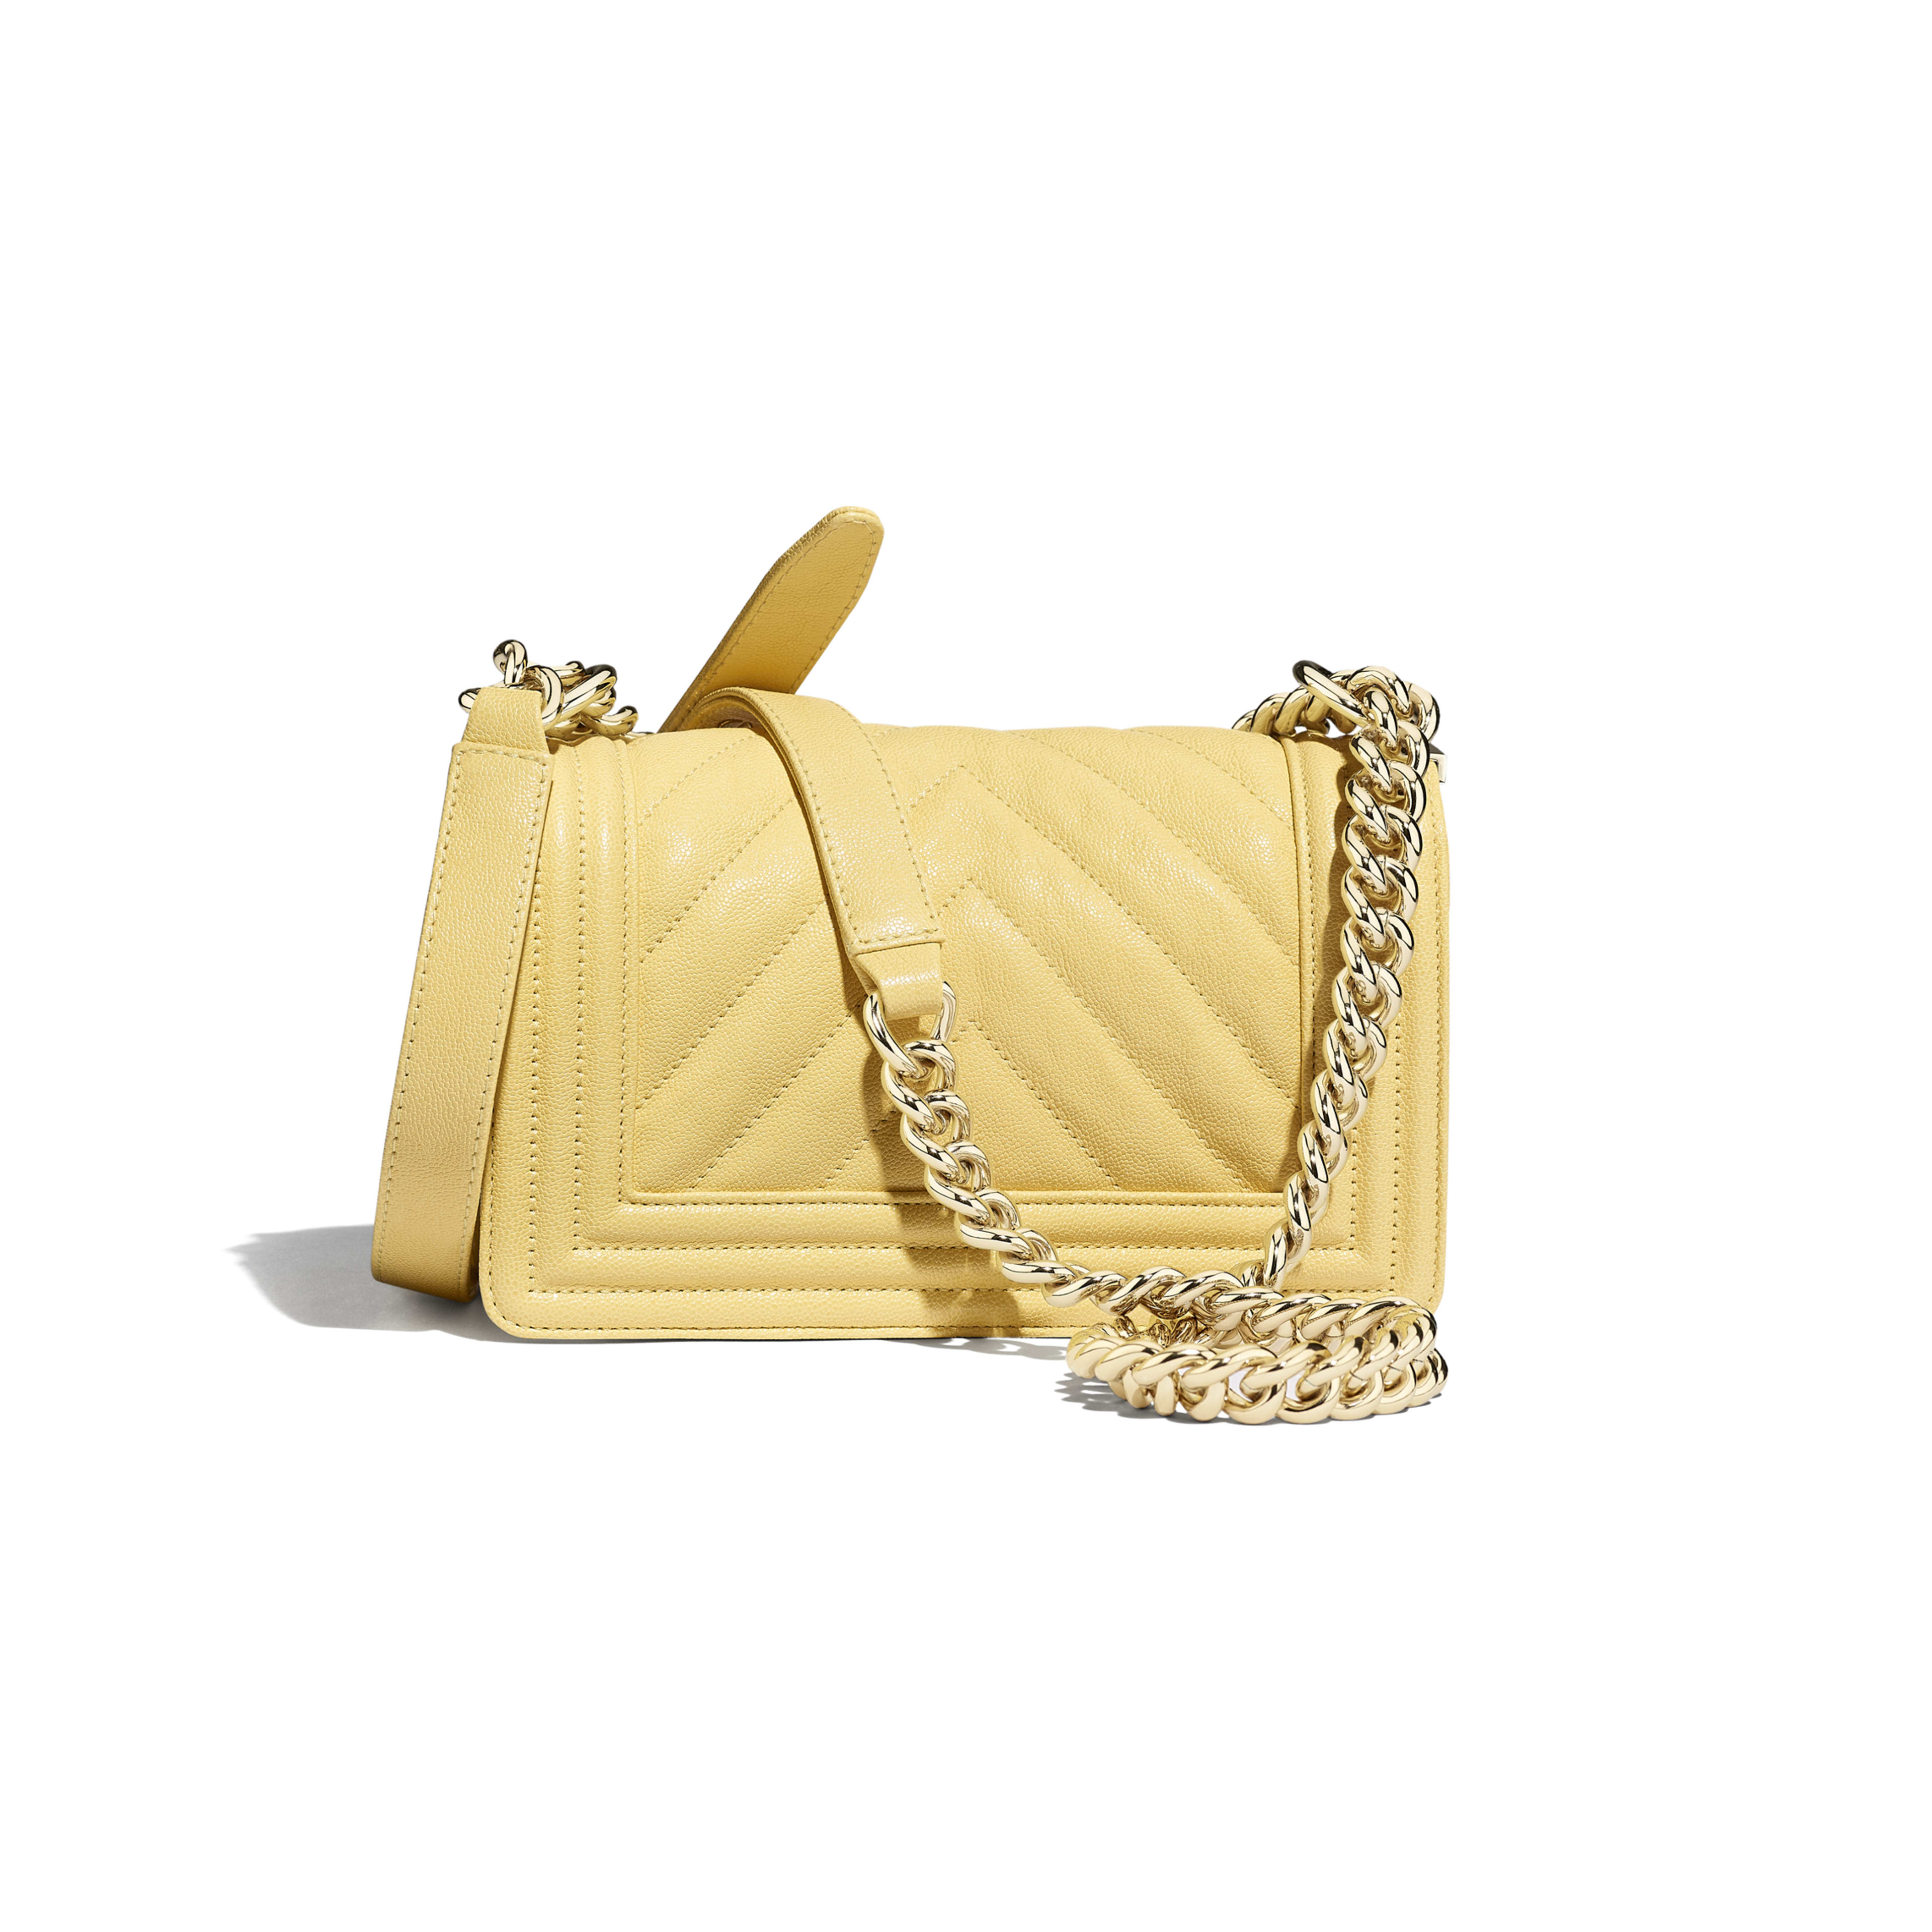 Small BOY CHANEL Handbag - Yellow - Grained Calfskin & Gold-Tone Metal - Alternative view - see full sized version